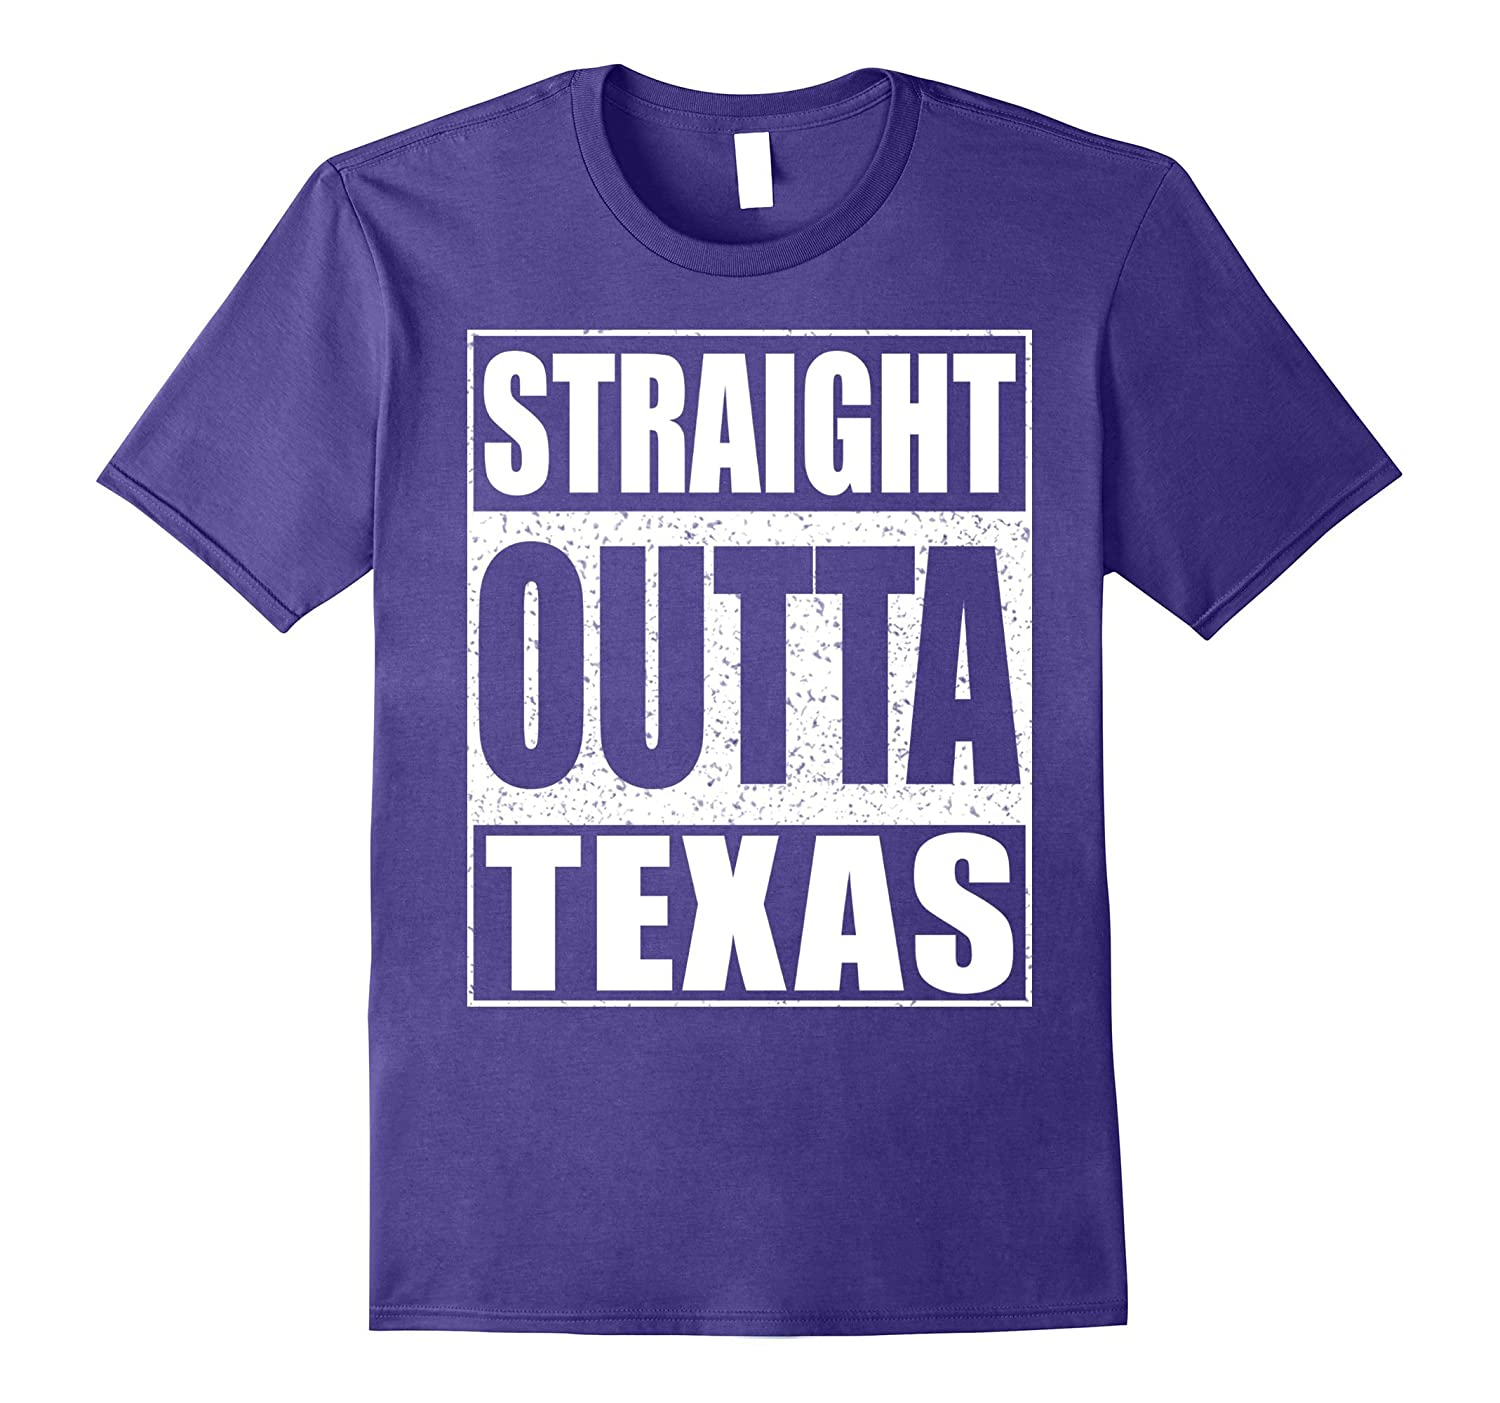 Straight Outta Texas T-Shirt Patriotic Texas State-FL